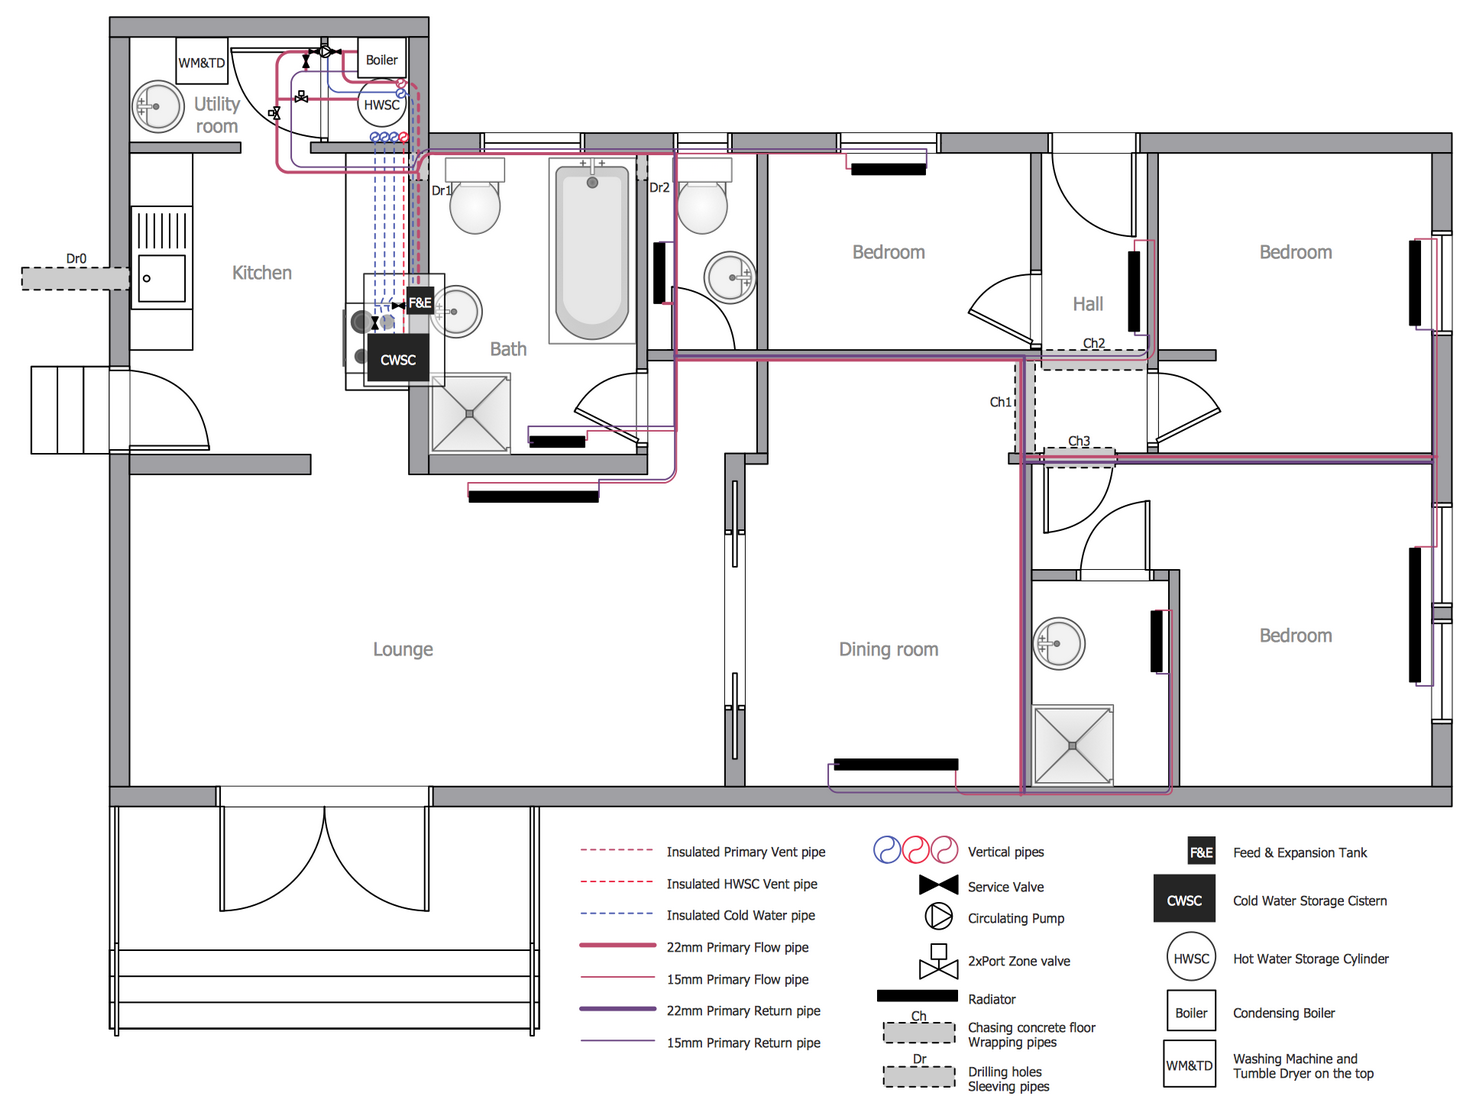 Plumbing and piping plans solution for Plumbing a new house